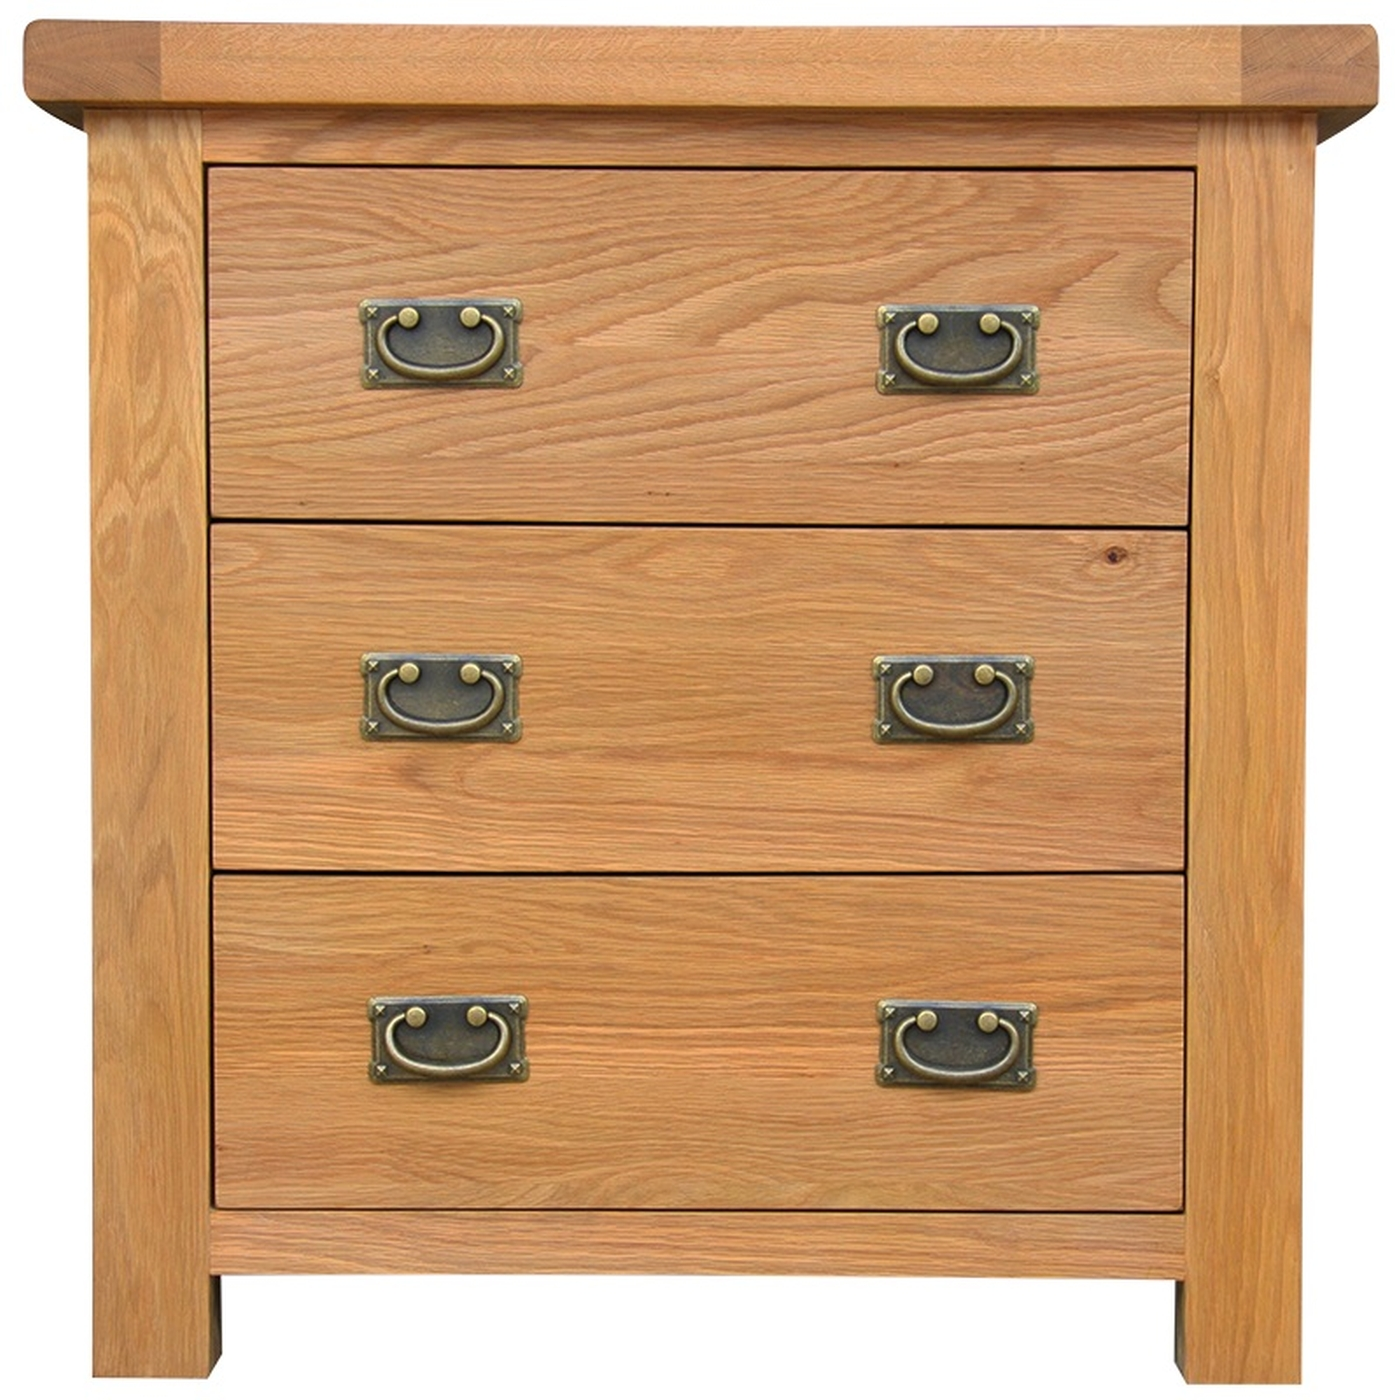 Ribble solid oak furniture small bedroom chest of drawers